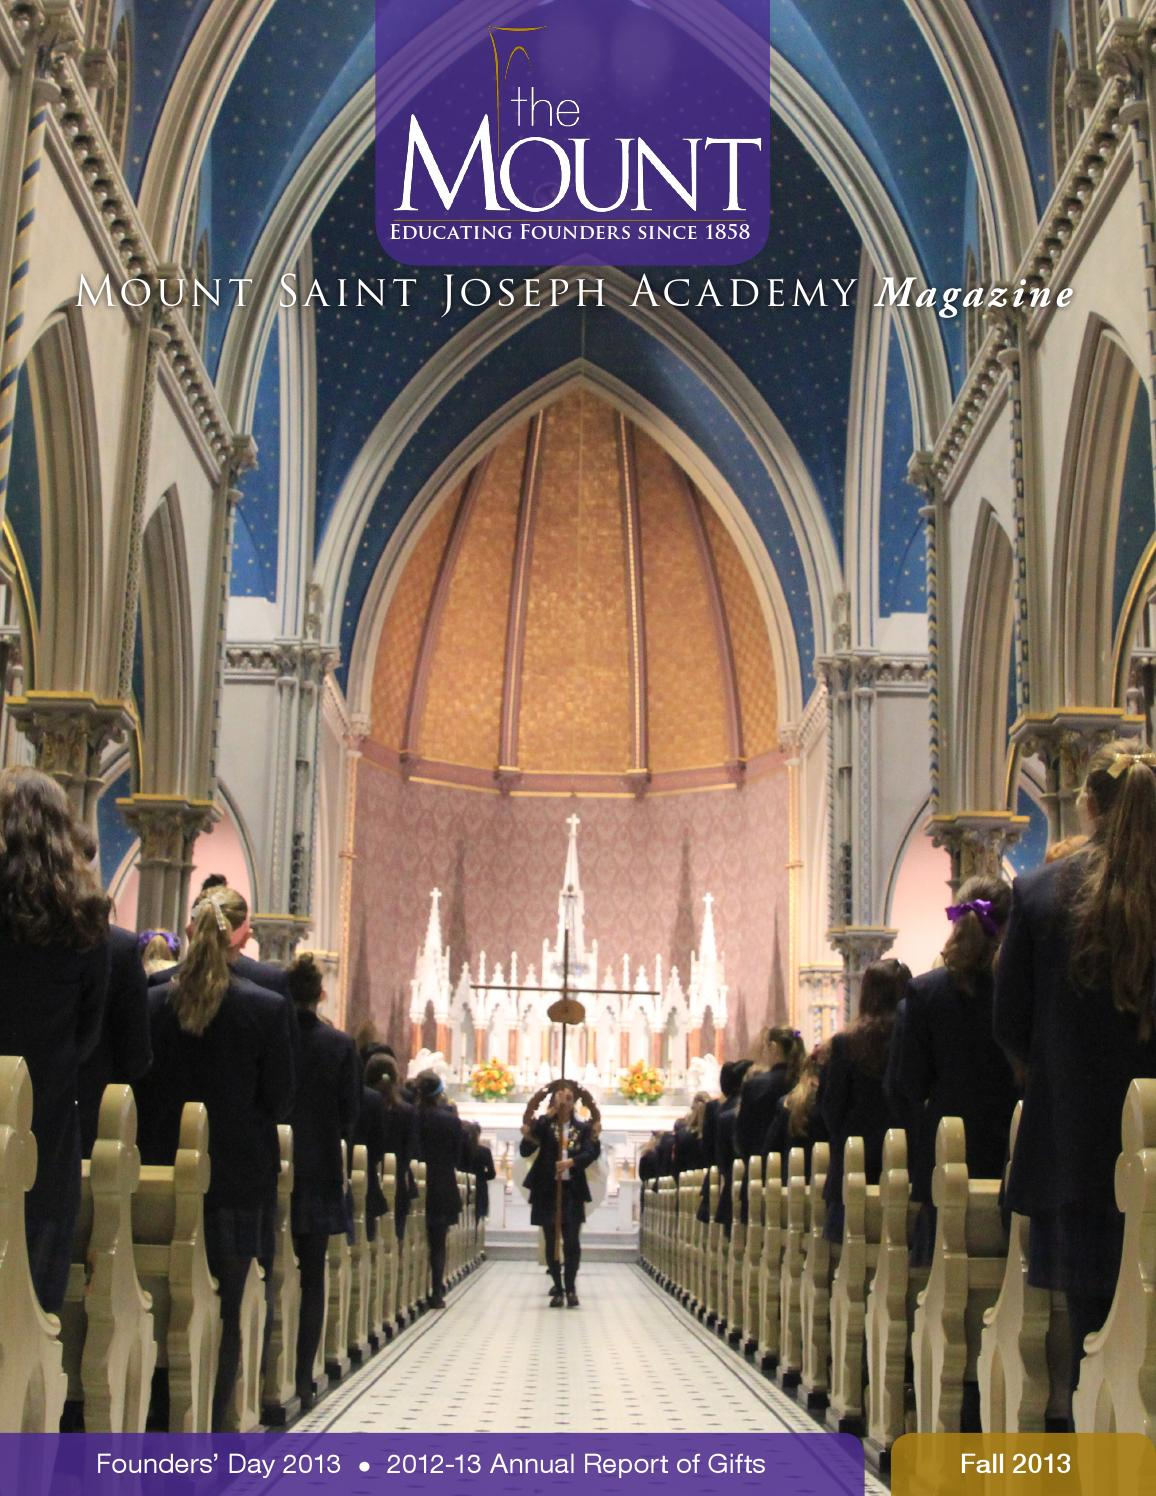 Kelly Services Grenoble Mount Magazine Fall 2013 Annual Report By Mount Saint